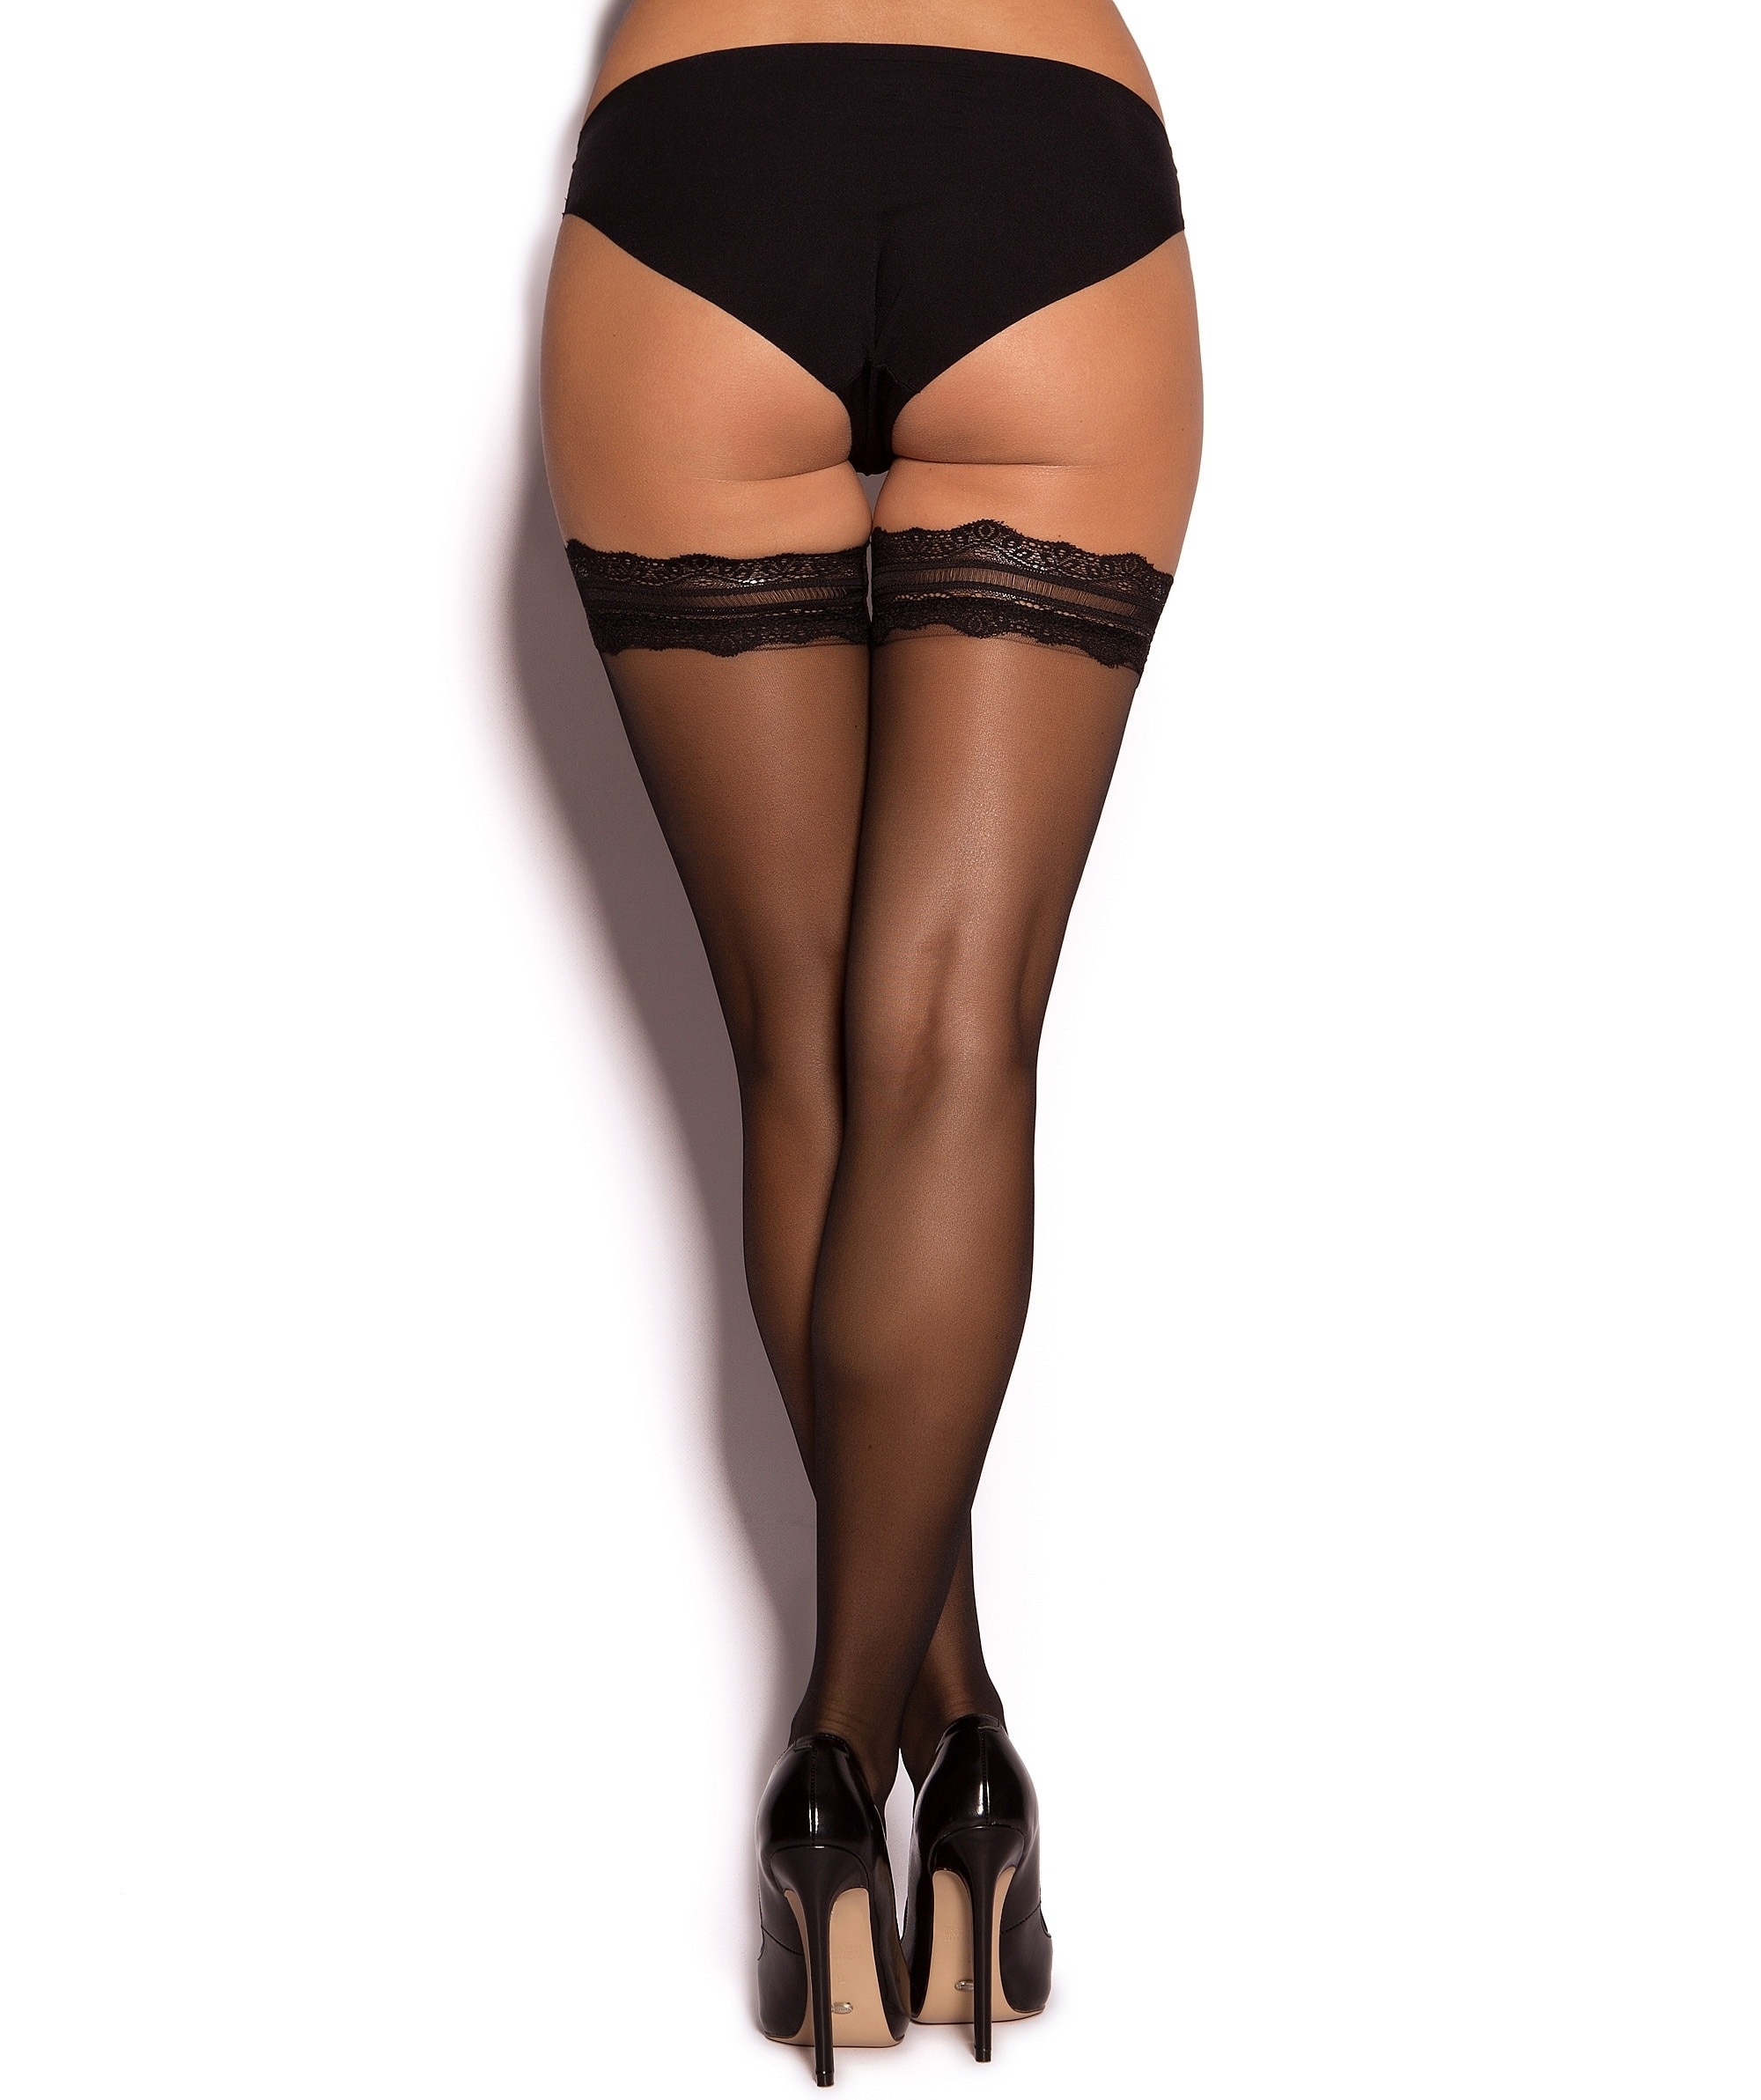 Lace Top Stay Up Stockings - Black